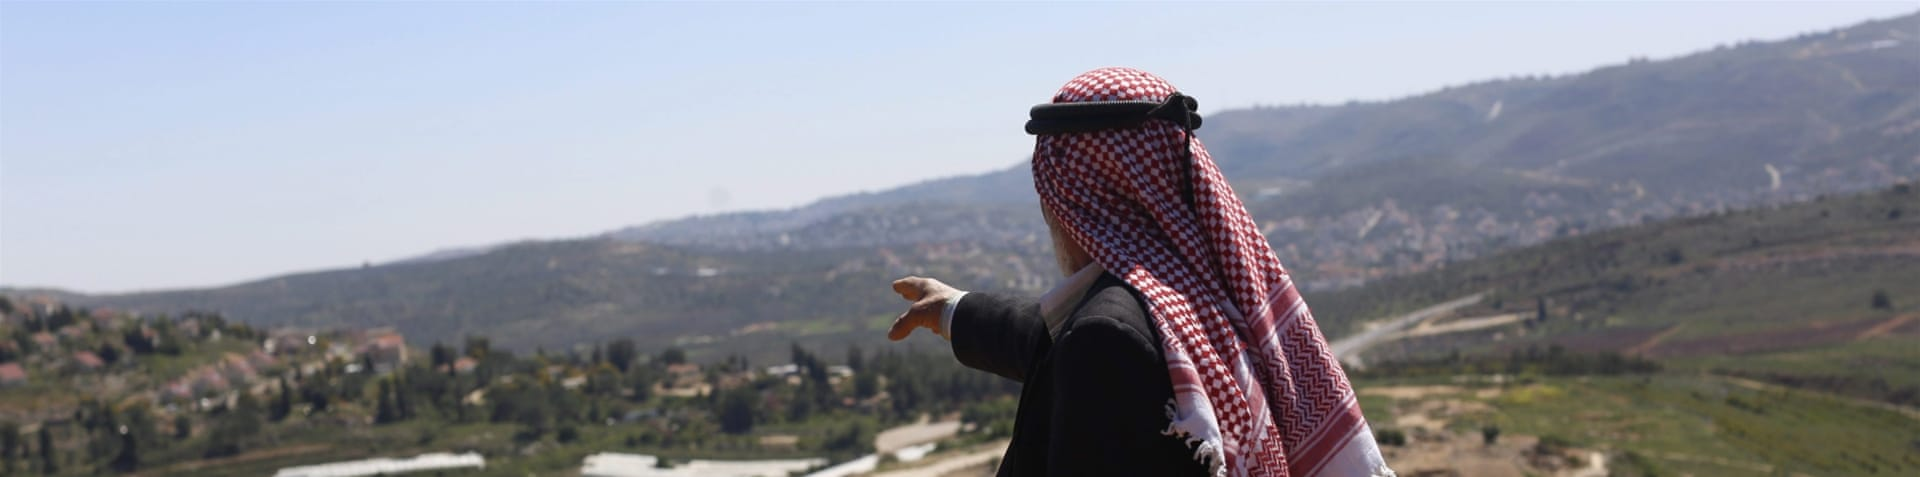 The law would allow Palestinians to remain owners of the land but they would not be granted any usage rights [Ariel Schalit/AP]